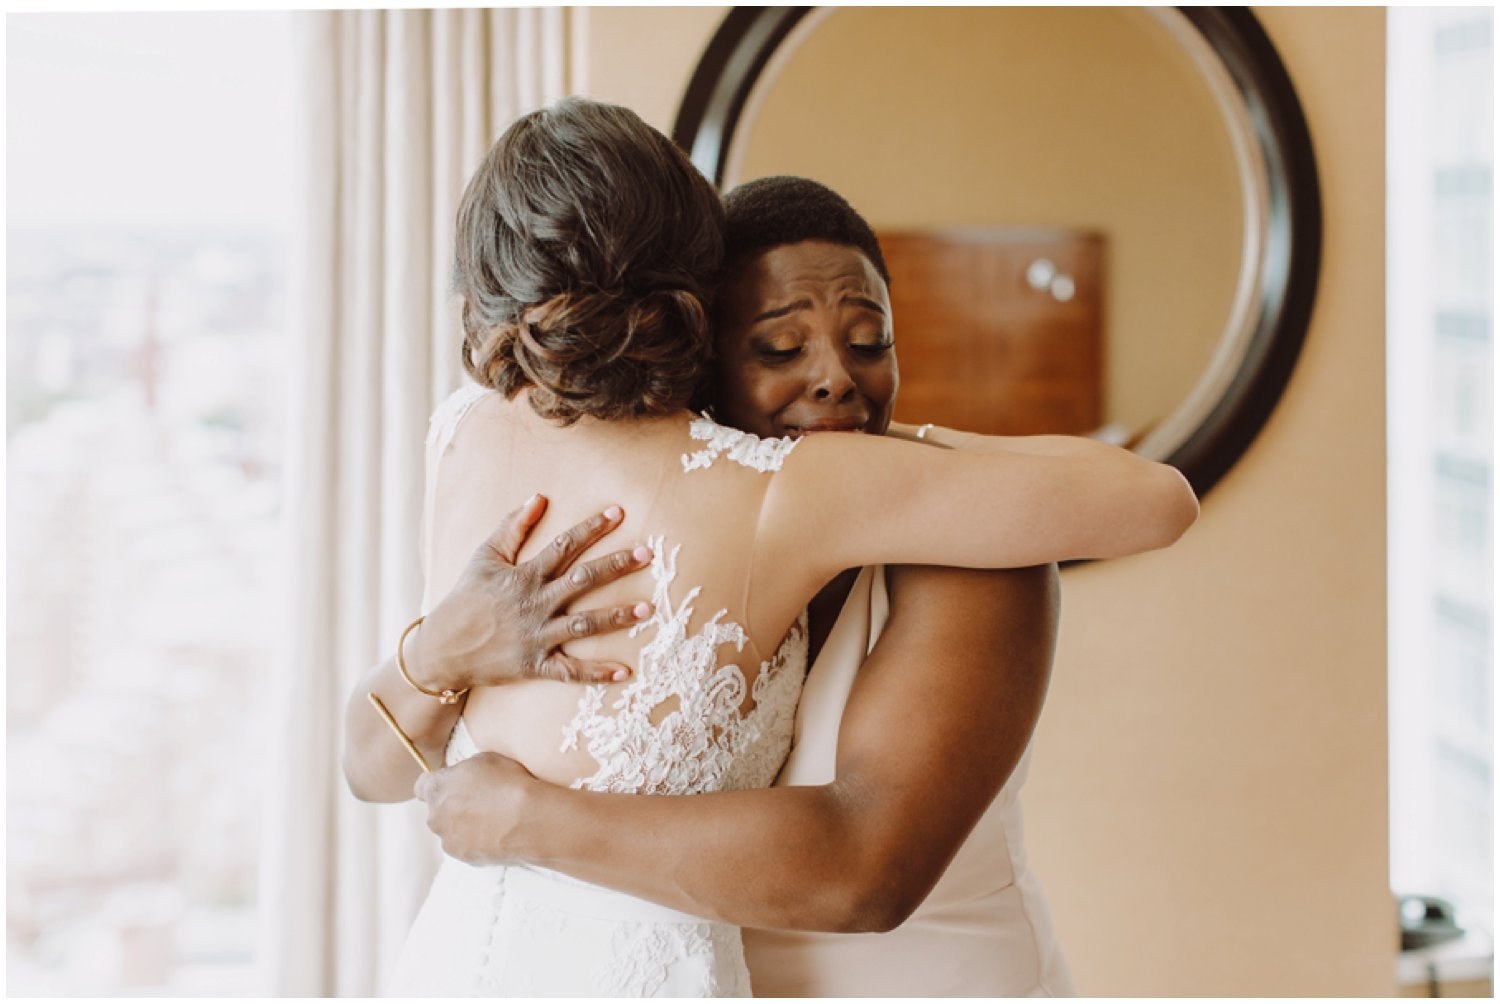 Baltimore wedding photographer | bridal getting ready portraits | emotional bridesmaids first look | Baltimore Maryland wedding